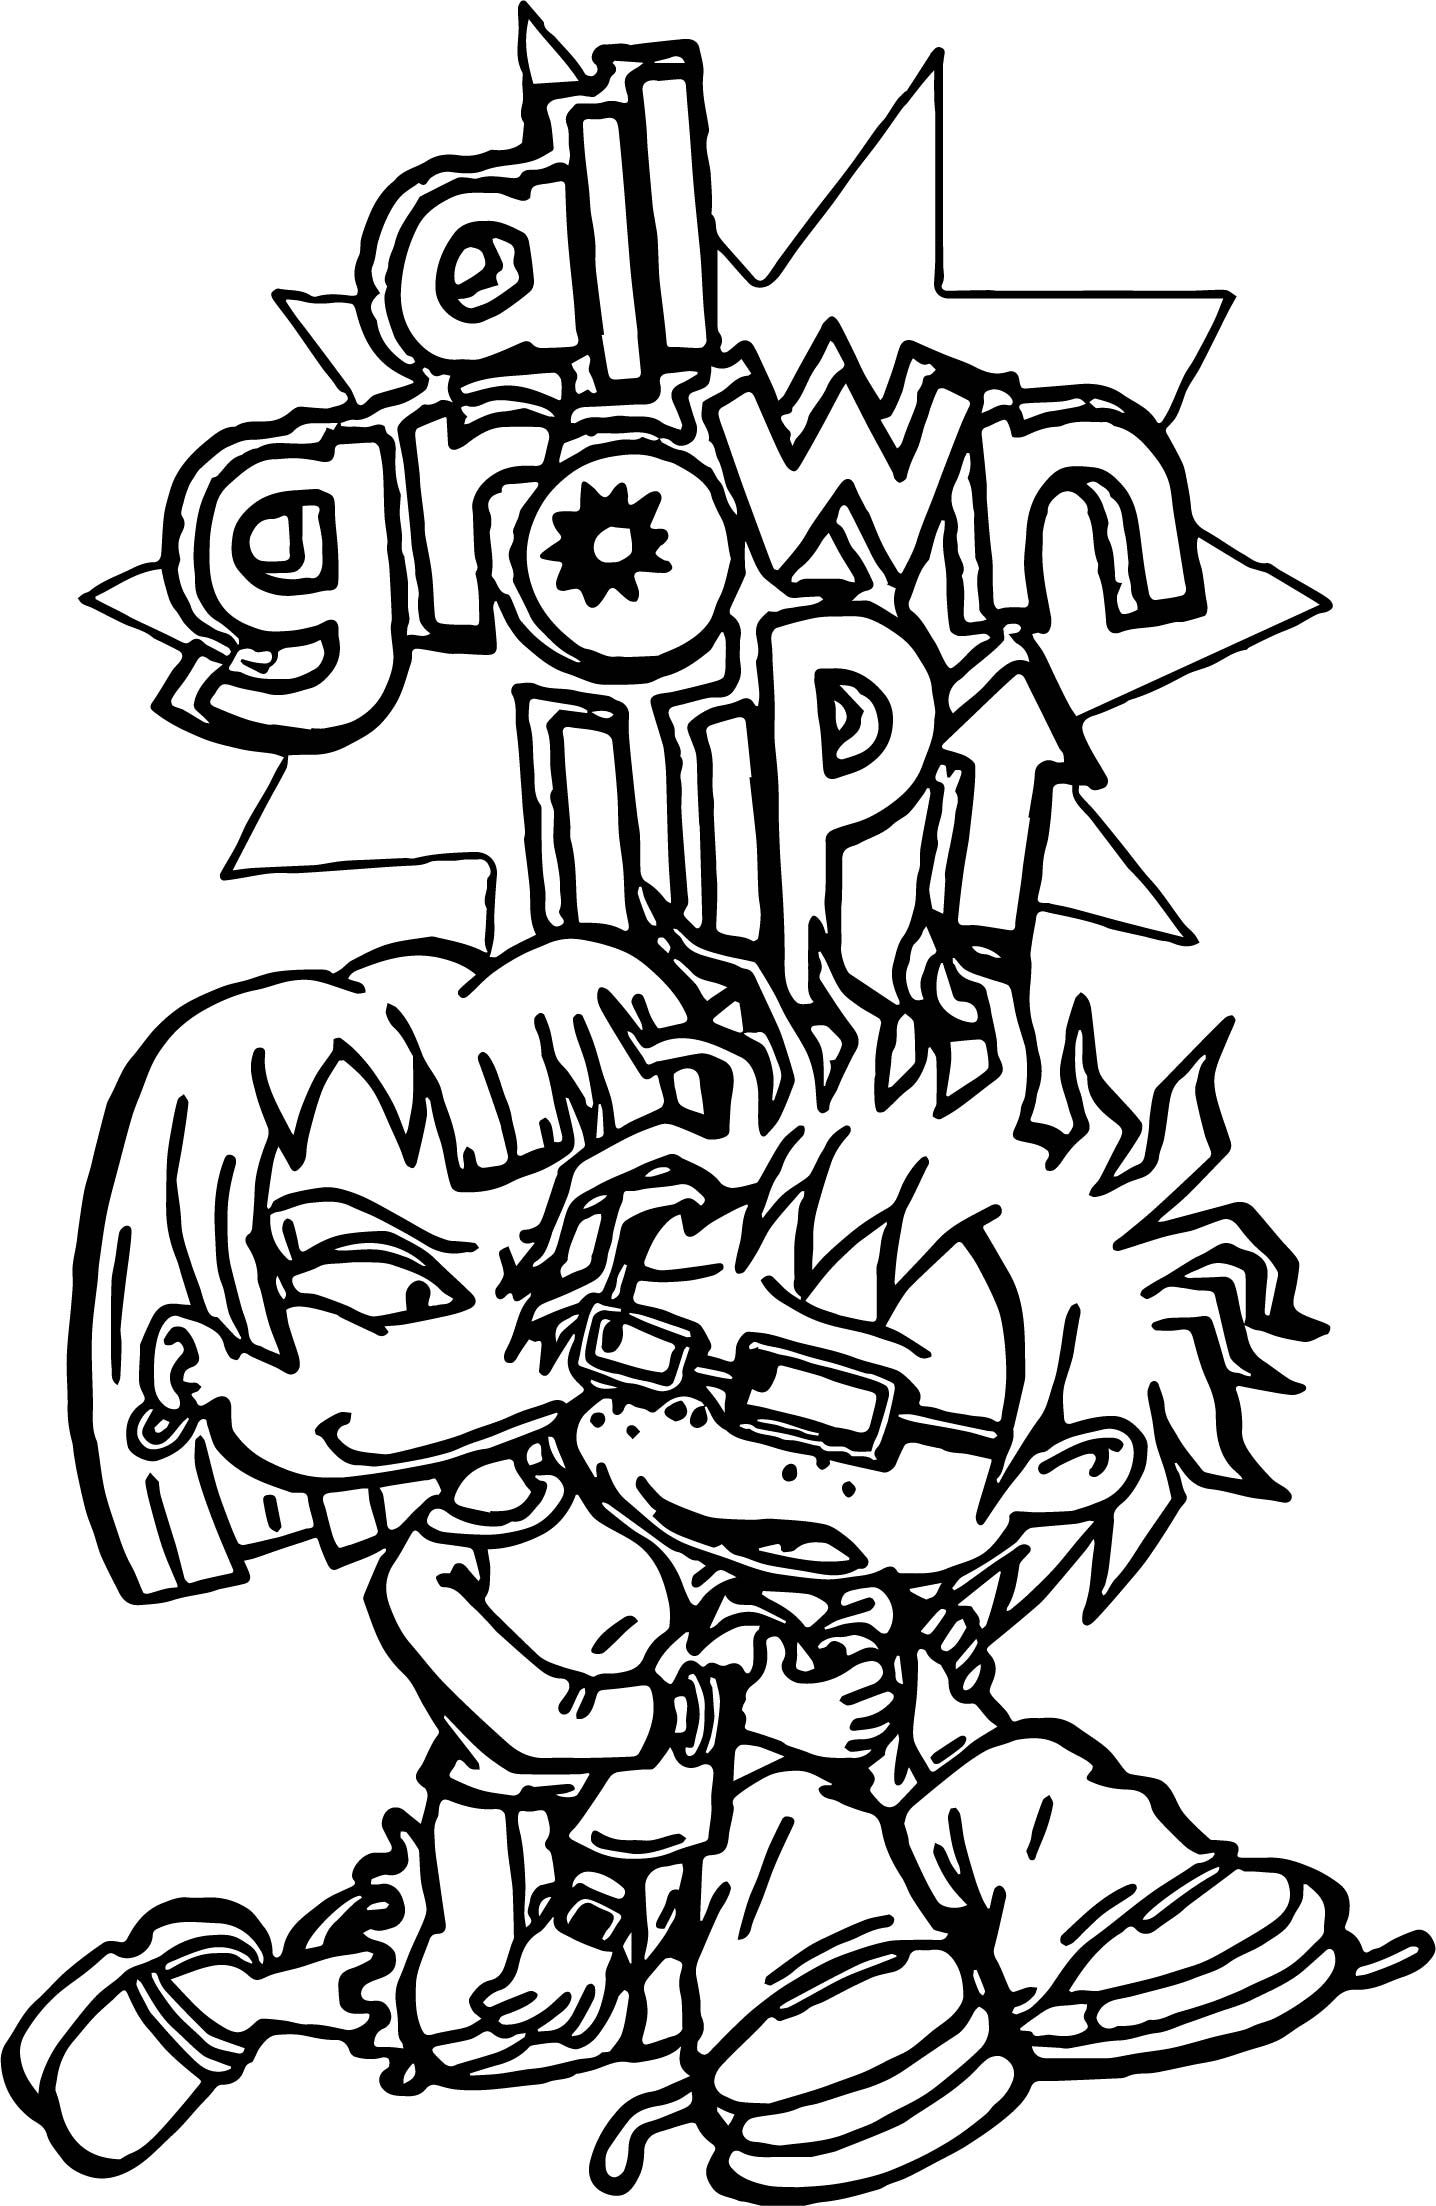 Rugrats All Grown Up Rugrats Coloring Page Color It My